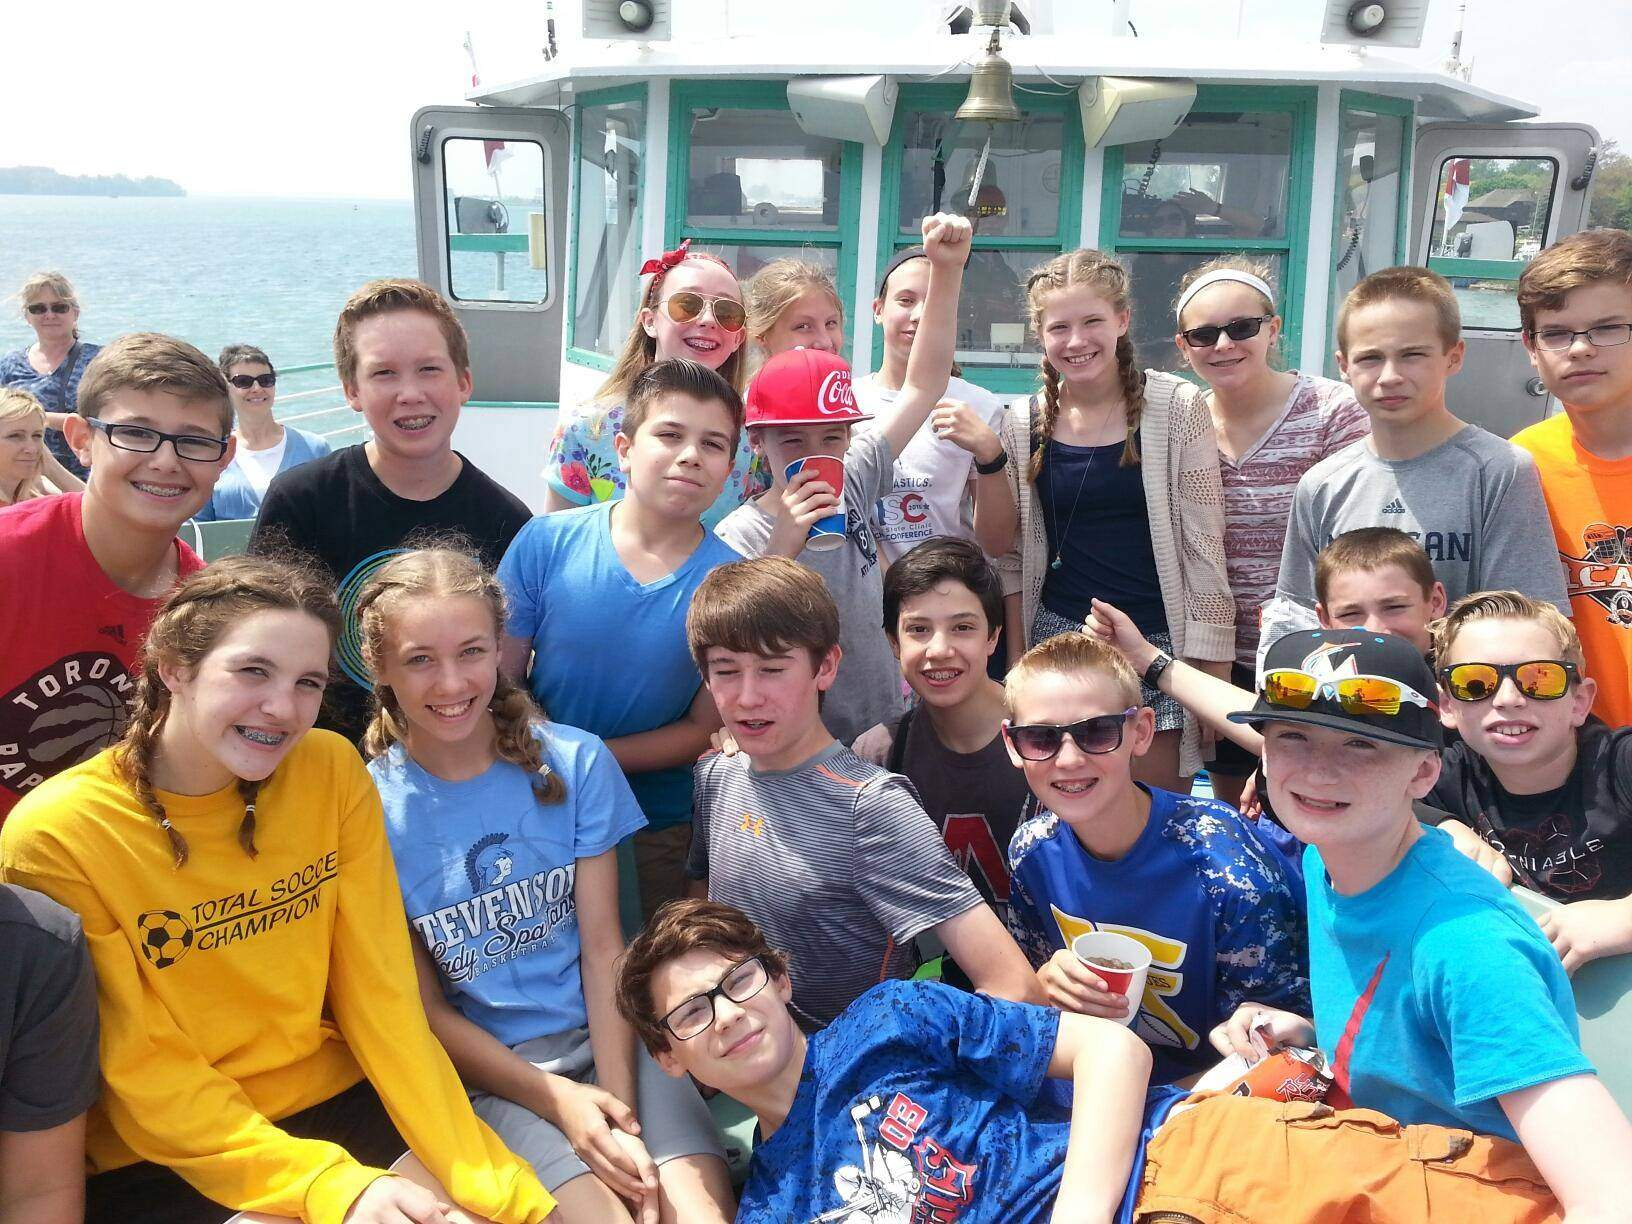 Middle school students on a river boat field trip